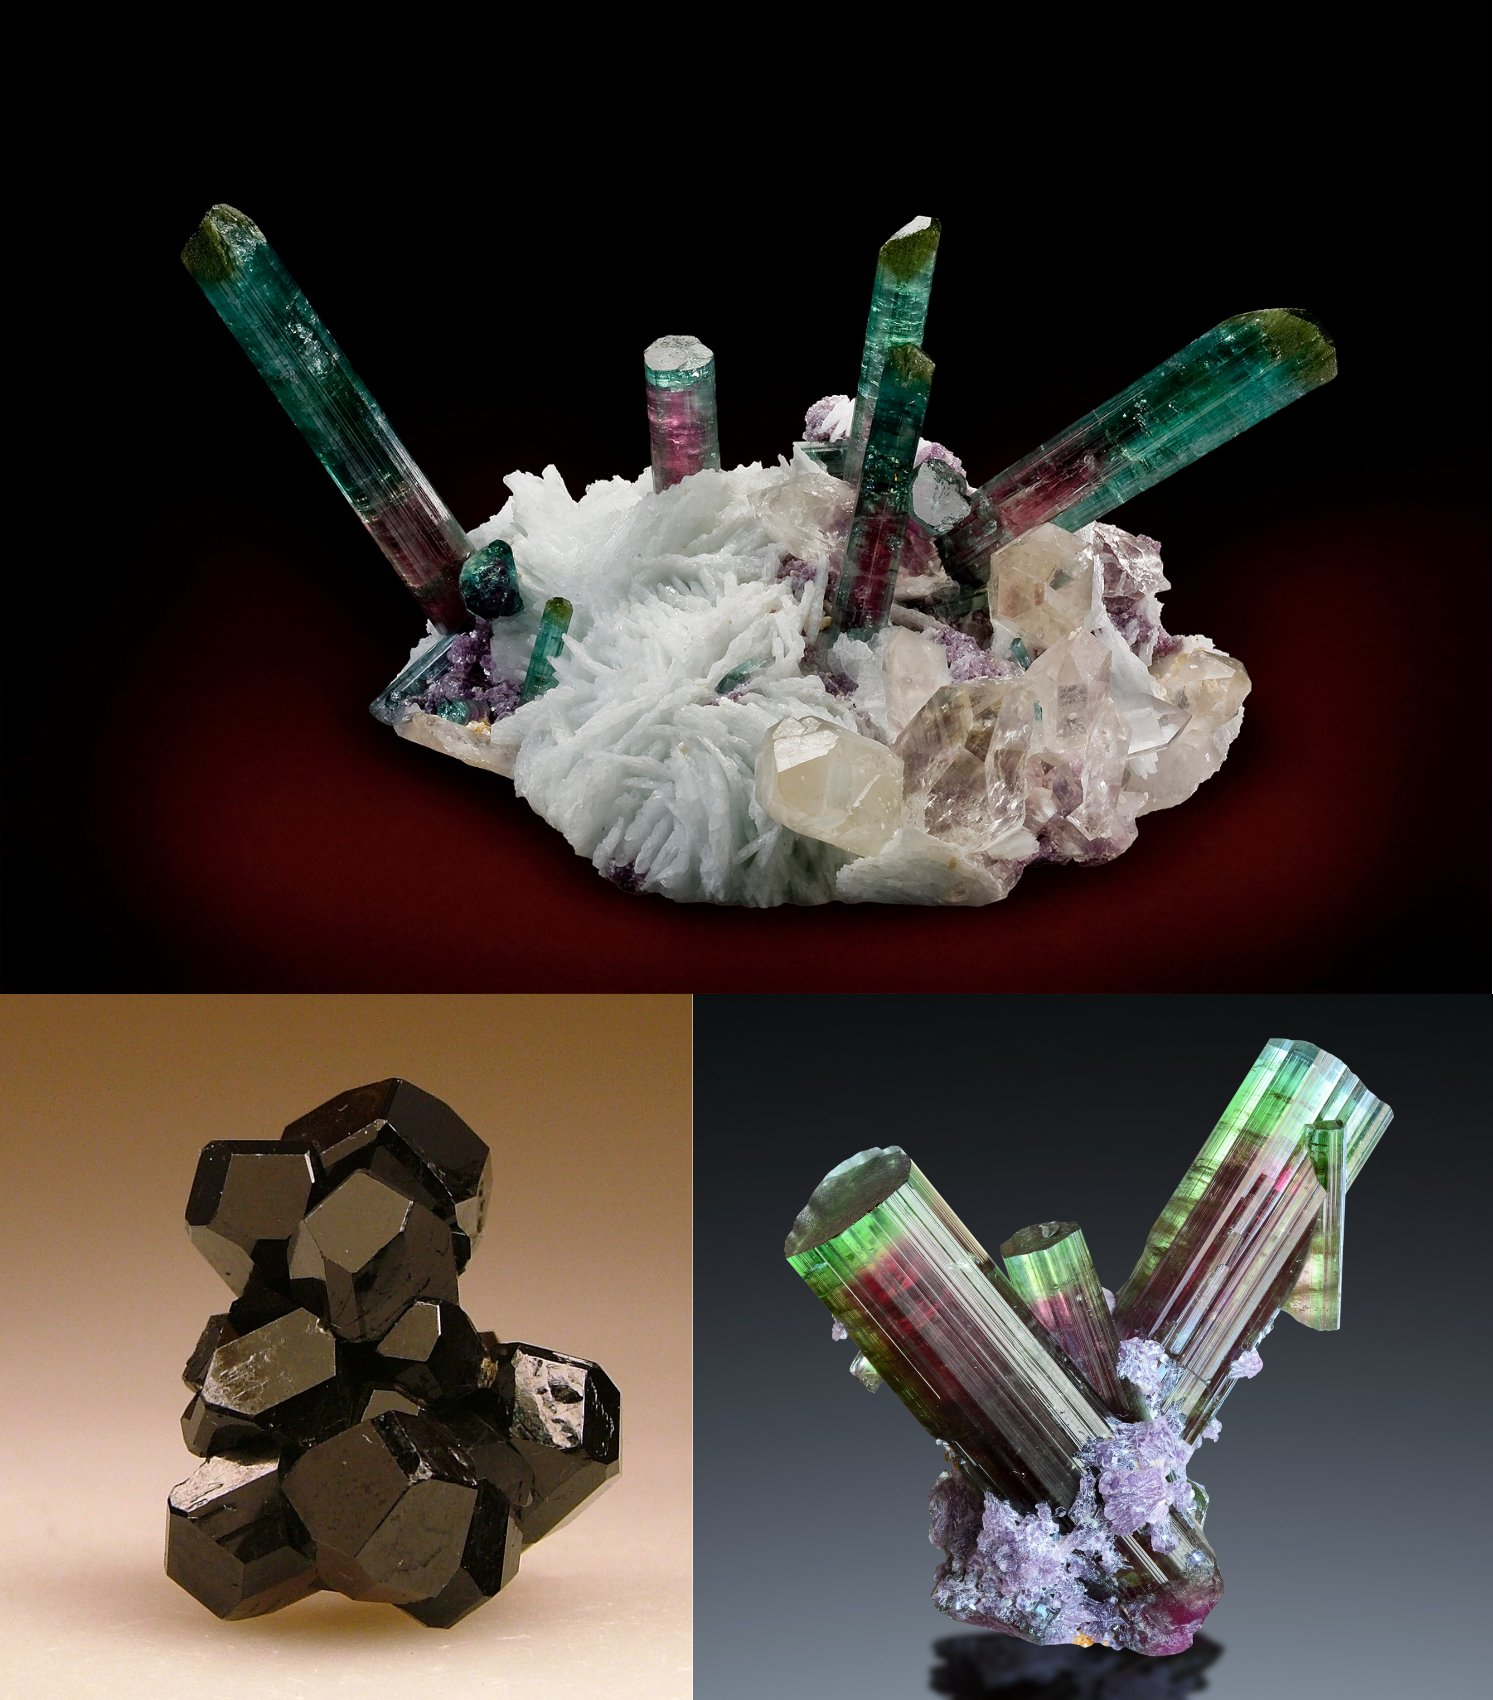 tourmaline meaning